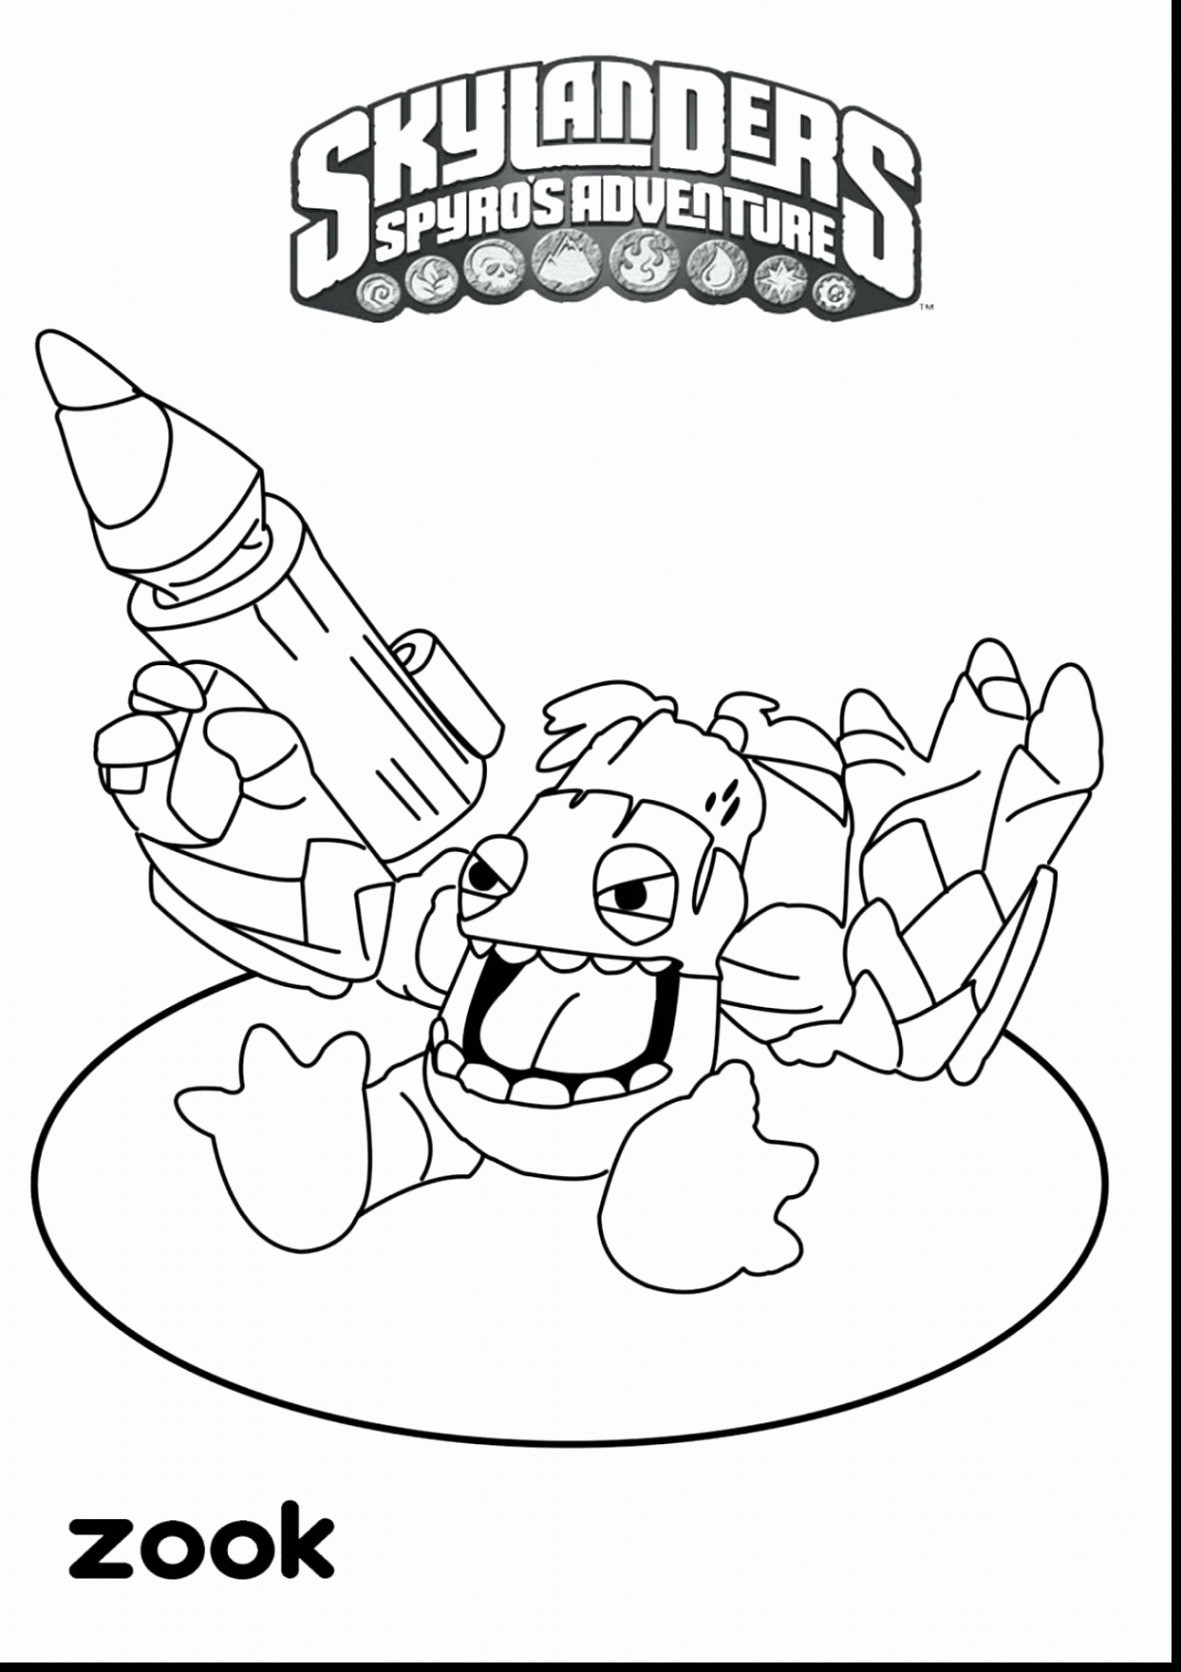 Hungry Caterpillar Coloring Pages Coloring Pages For The Very Hungry Caterpillar Pages Printable